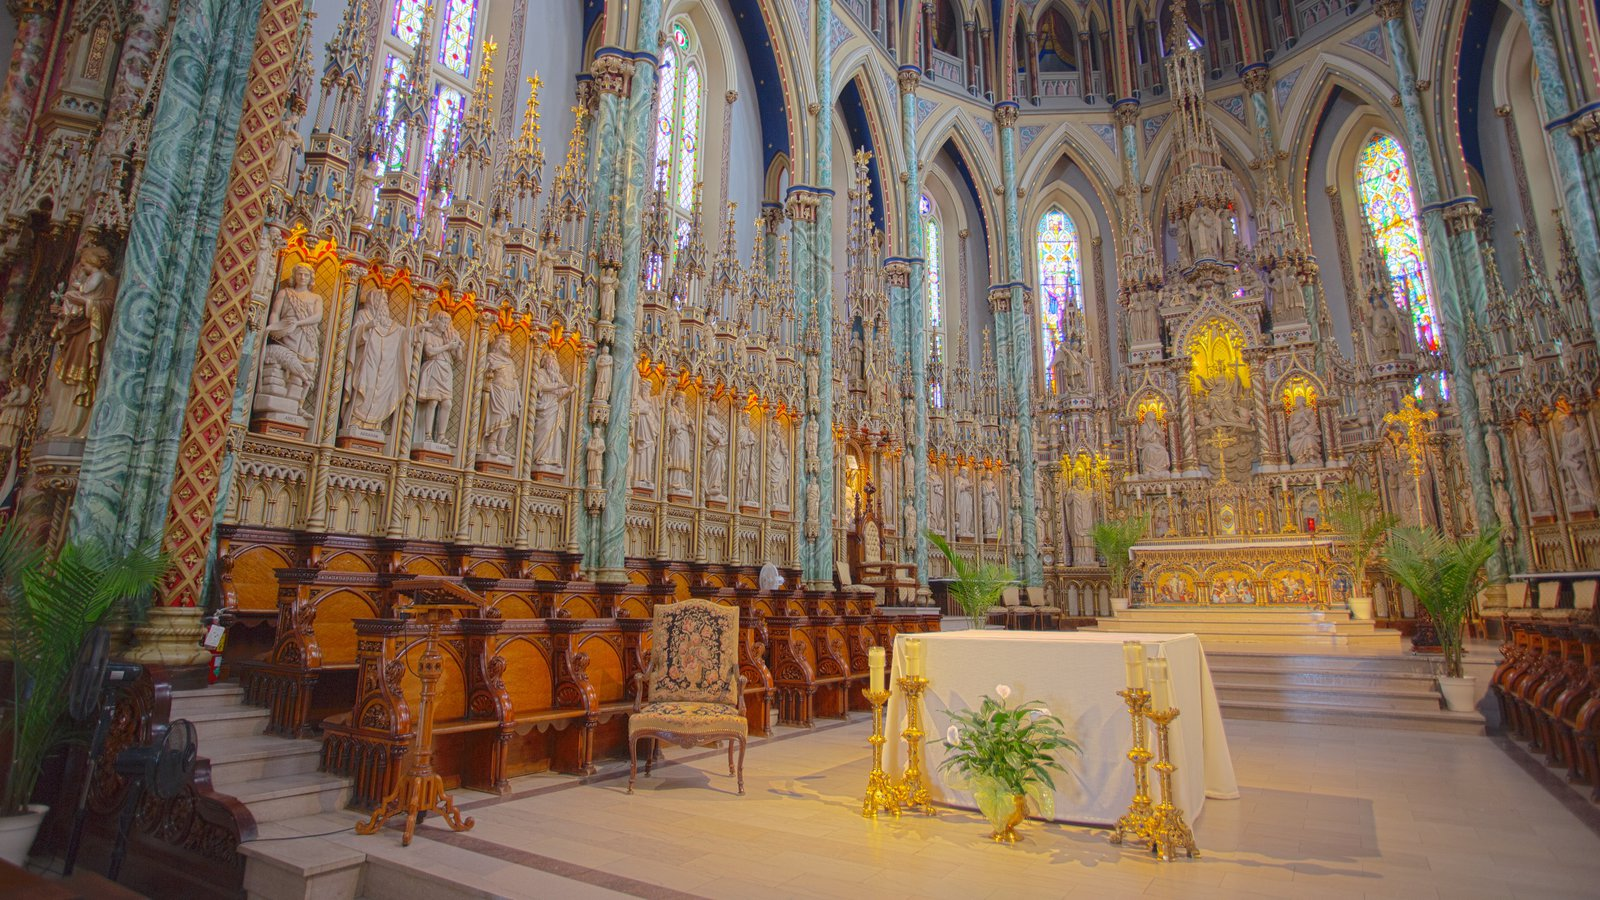 Canada Science & Technology Museum Ottawa, Religious Pictures: View Images of Notre-Dame Cathedral Basilica